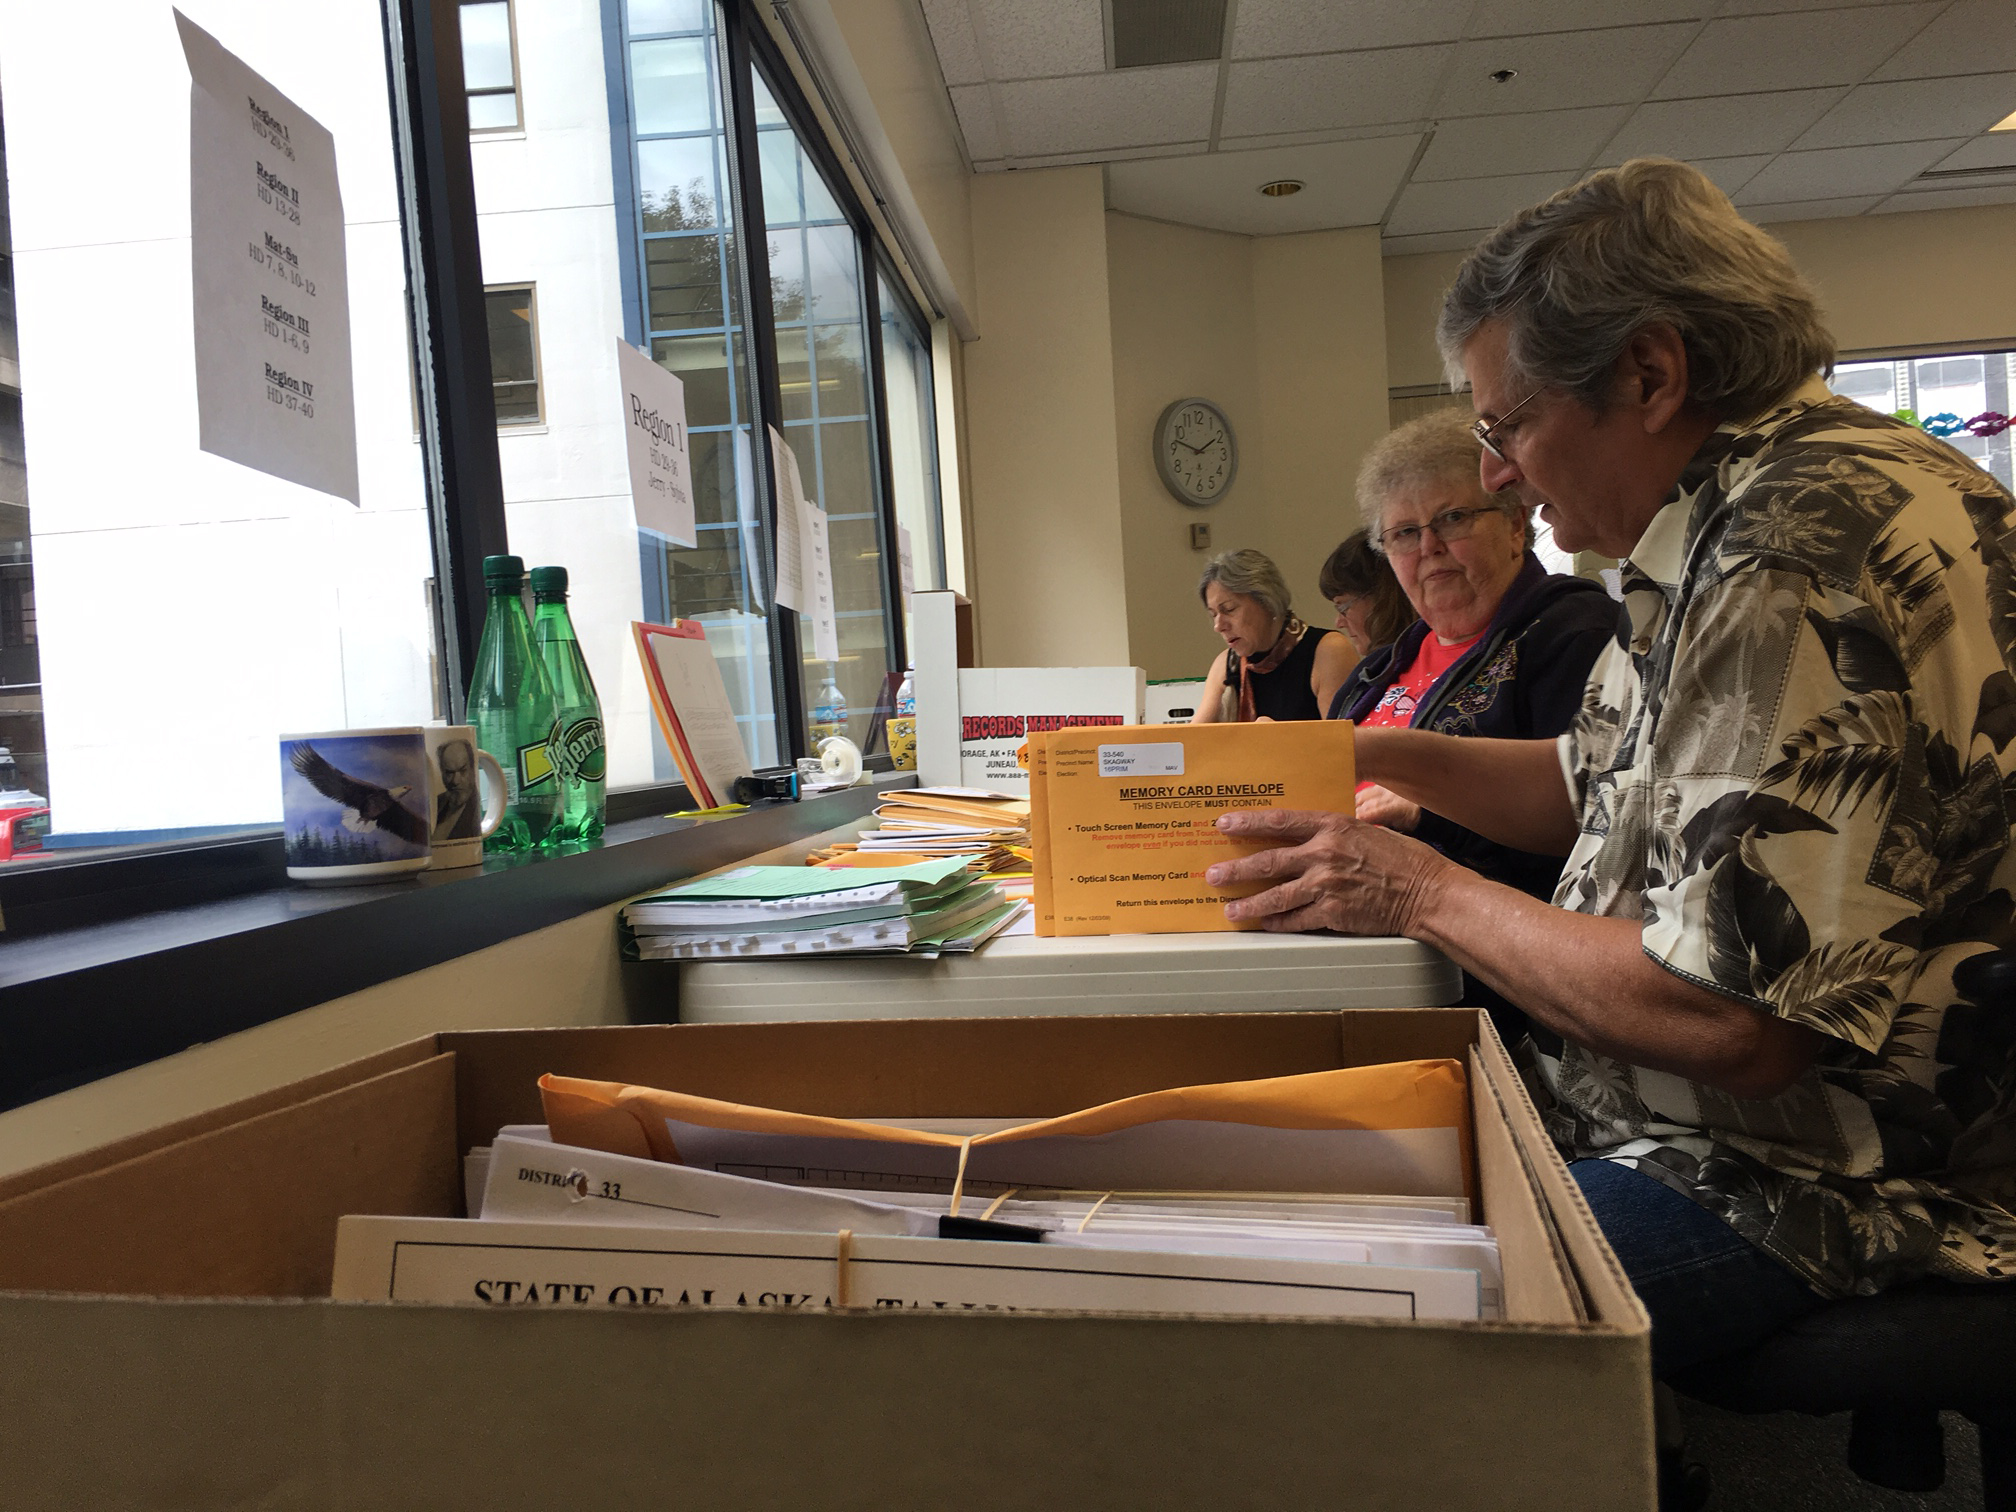 Election review board members sort through election materials at the Division of Elections office in Juneau, Aug. 30, 2016. (By Andrew Kitchenman/KTOO)